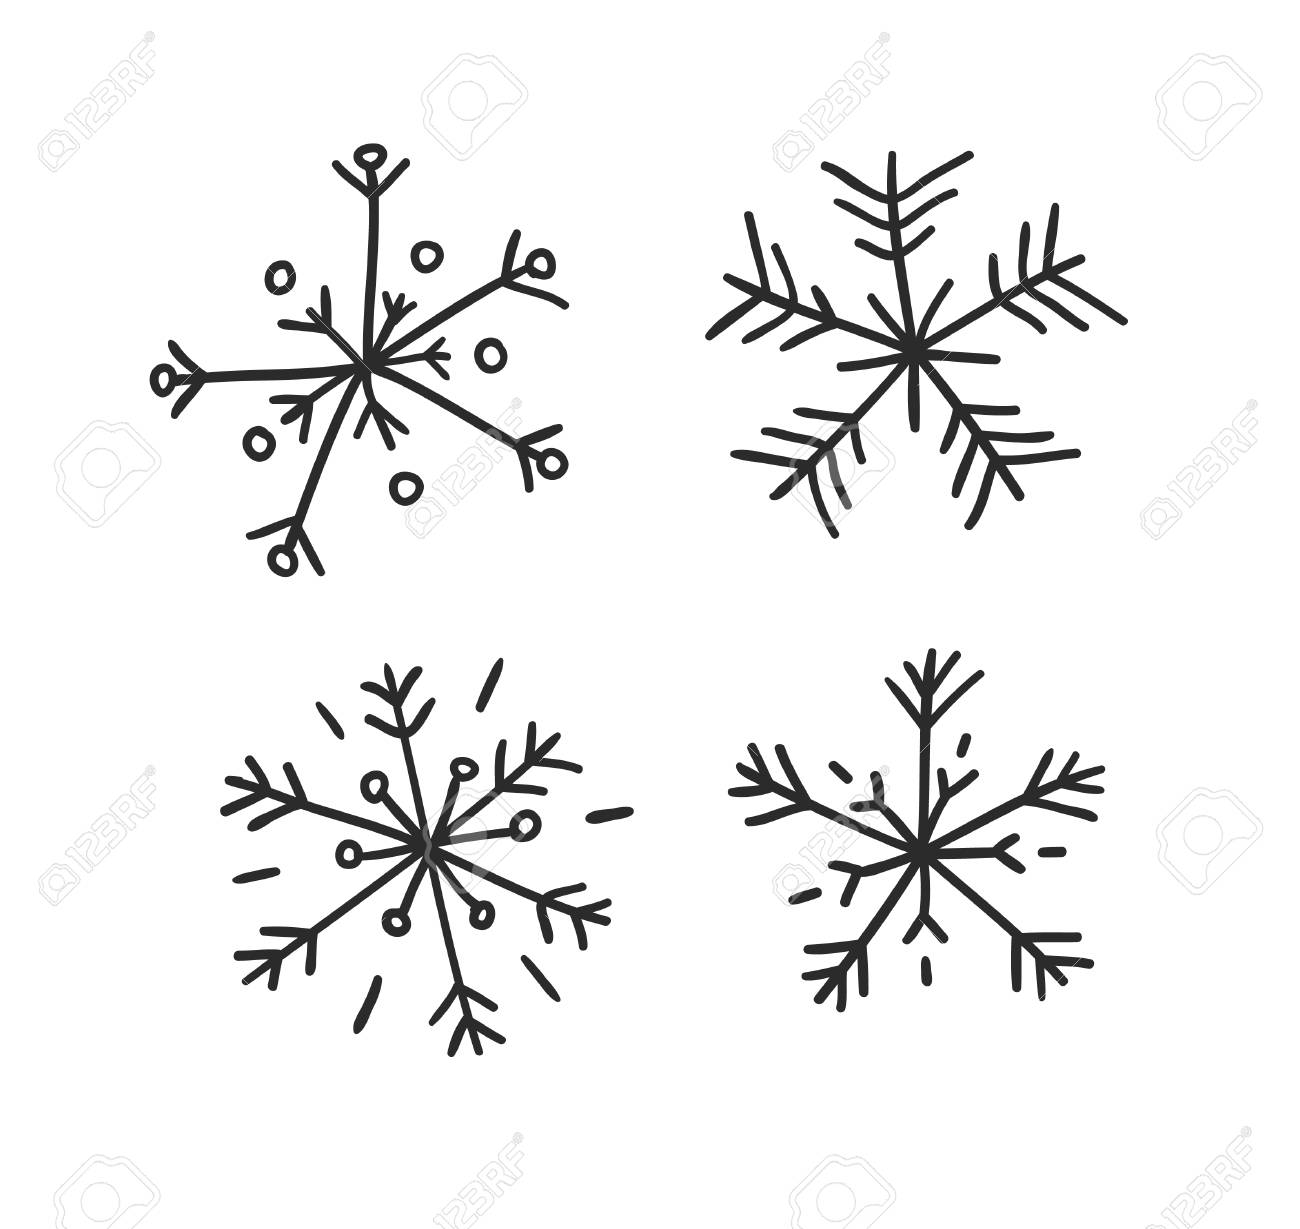 Hand drawn set of vintage snowflakes. Black on white background. Abstract doodle drawing snow. Vector retro art illustration - 112978763